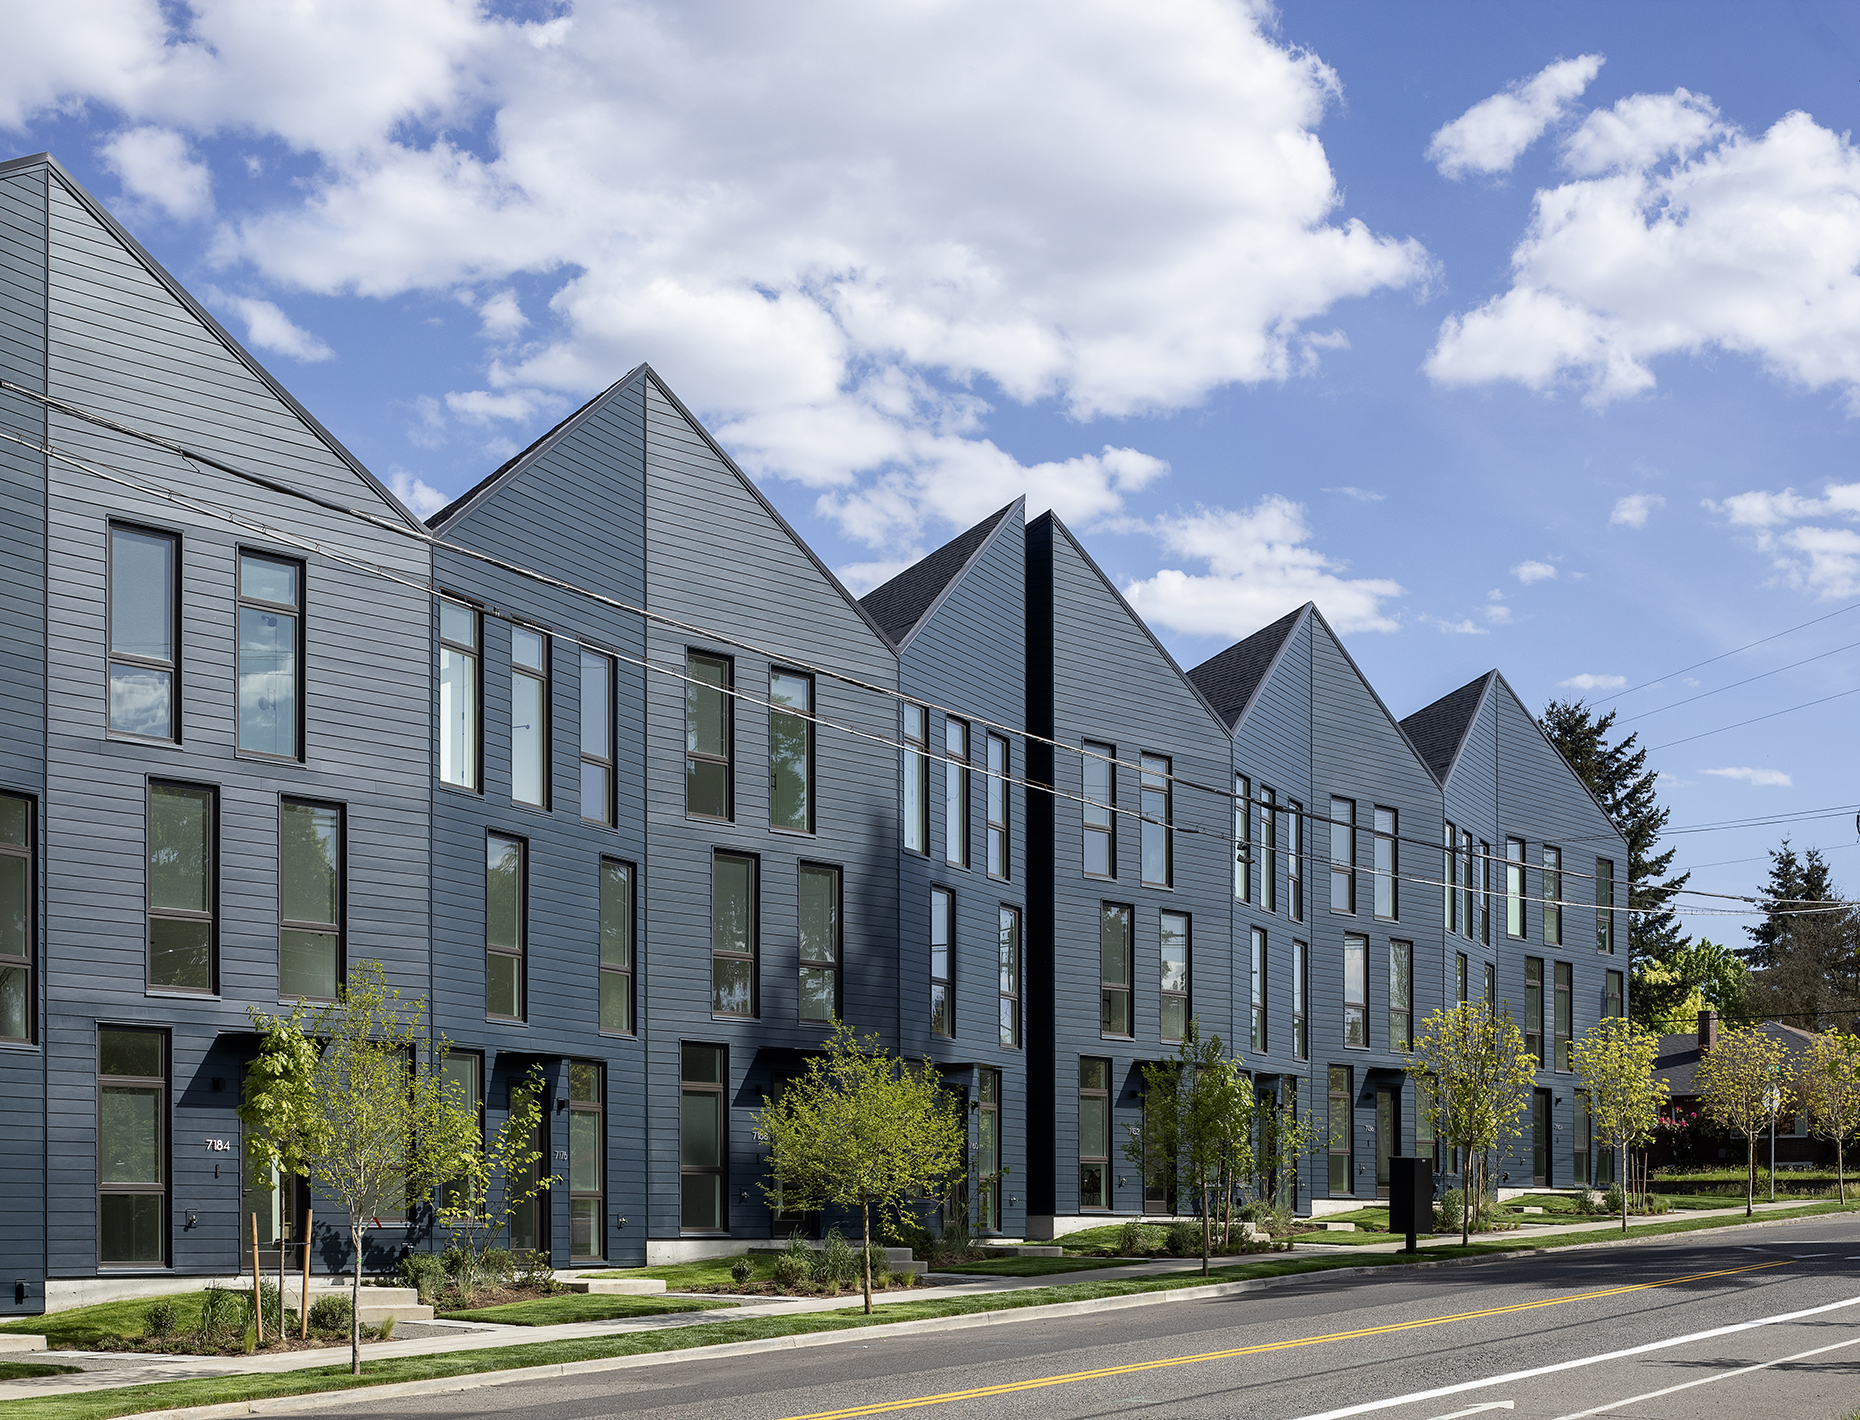 Exterior shot of origami-inspired townhouses in Portland clad in timber